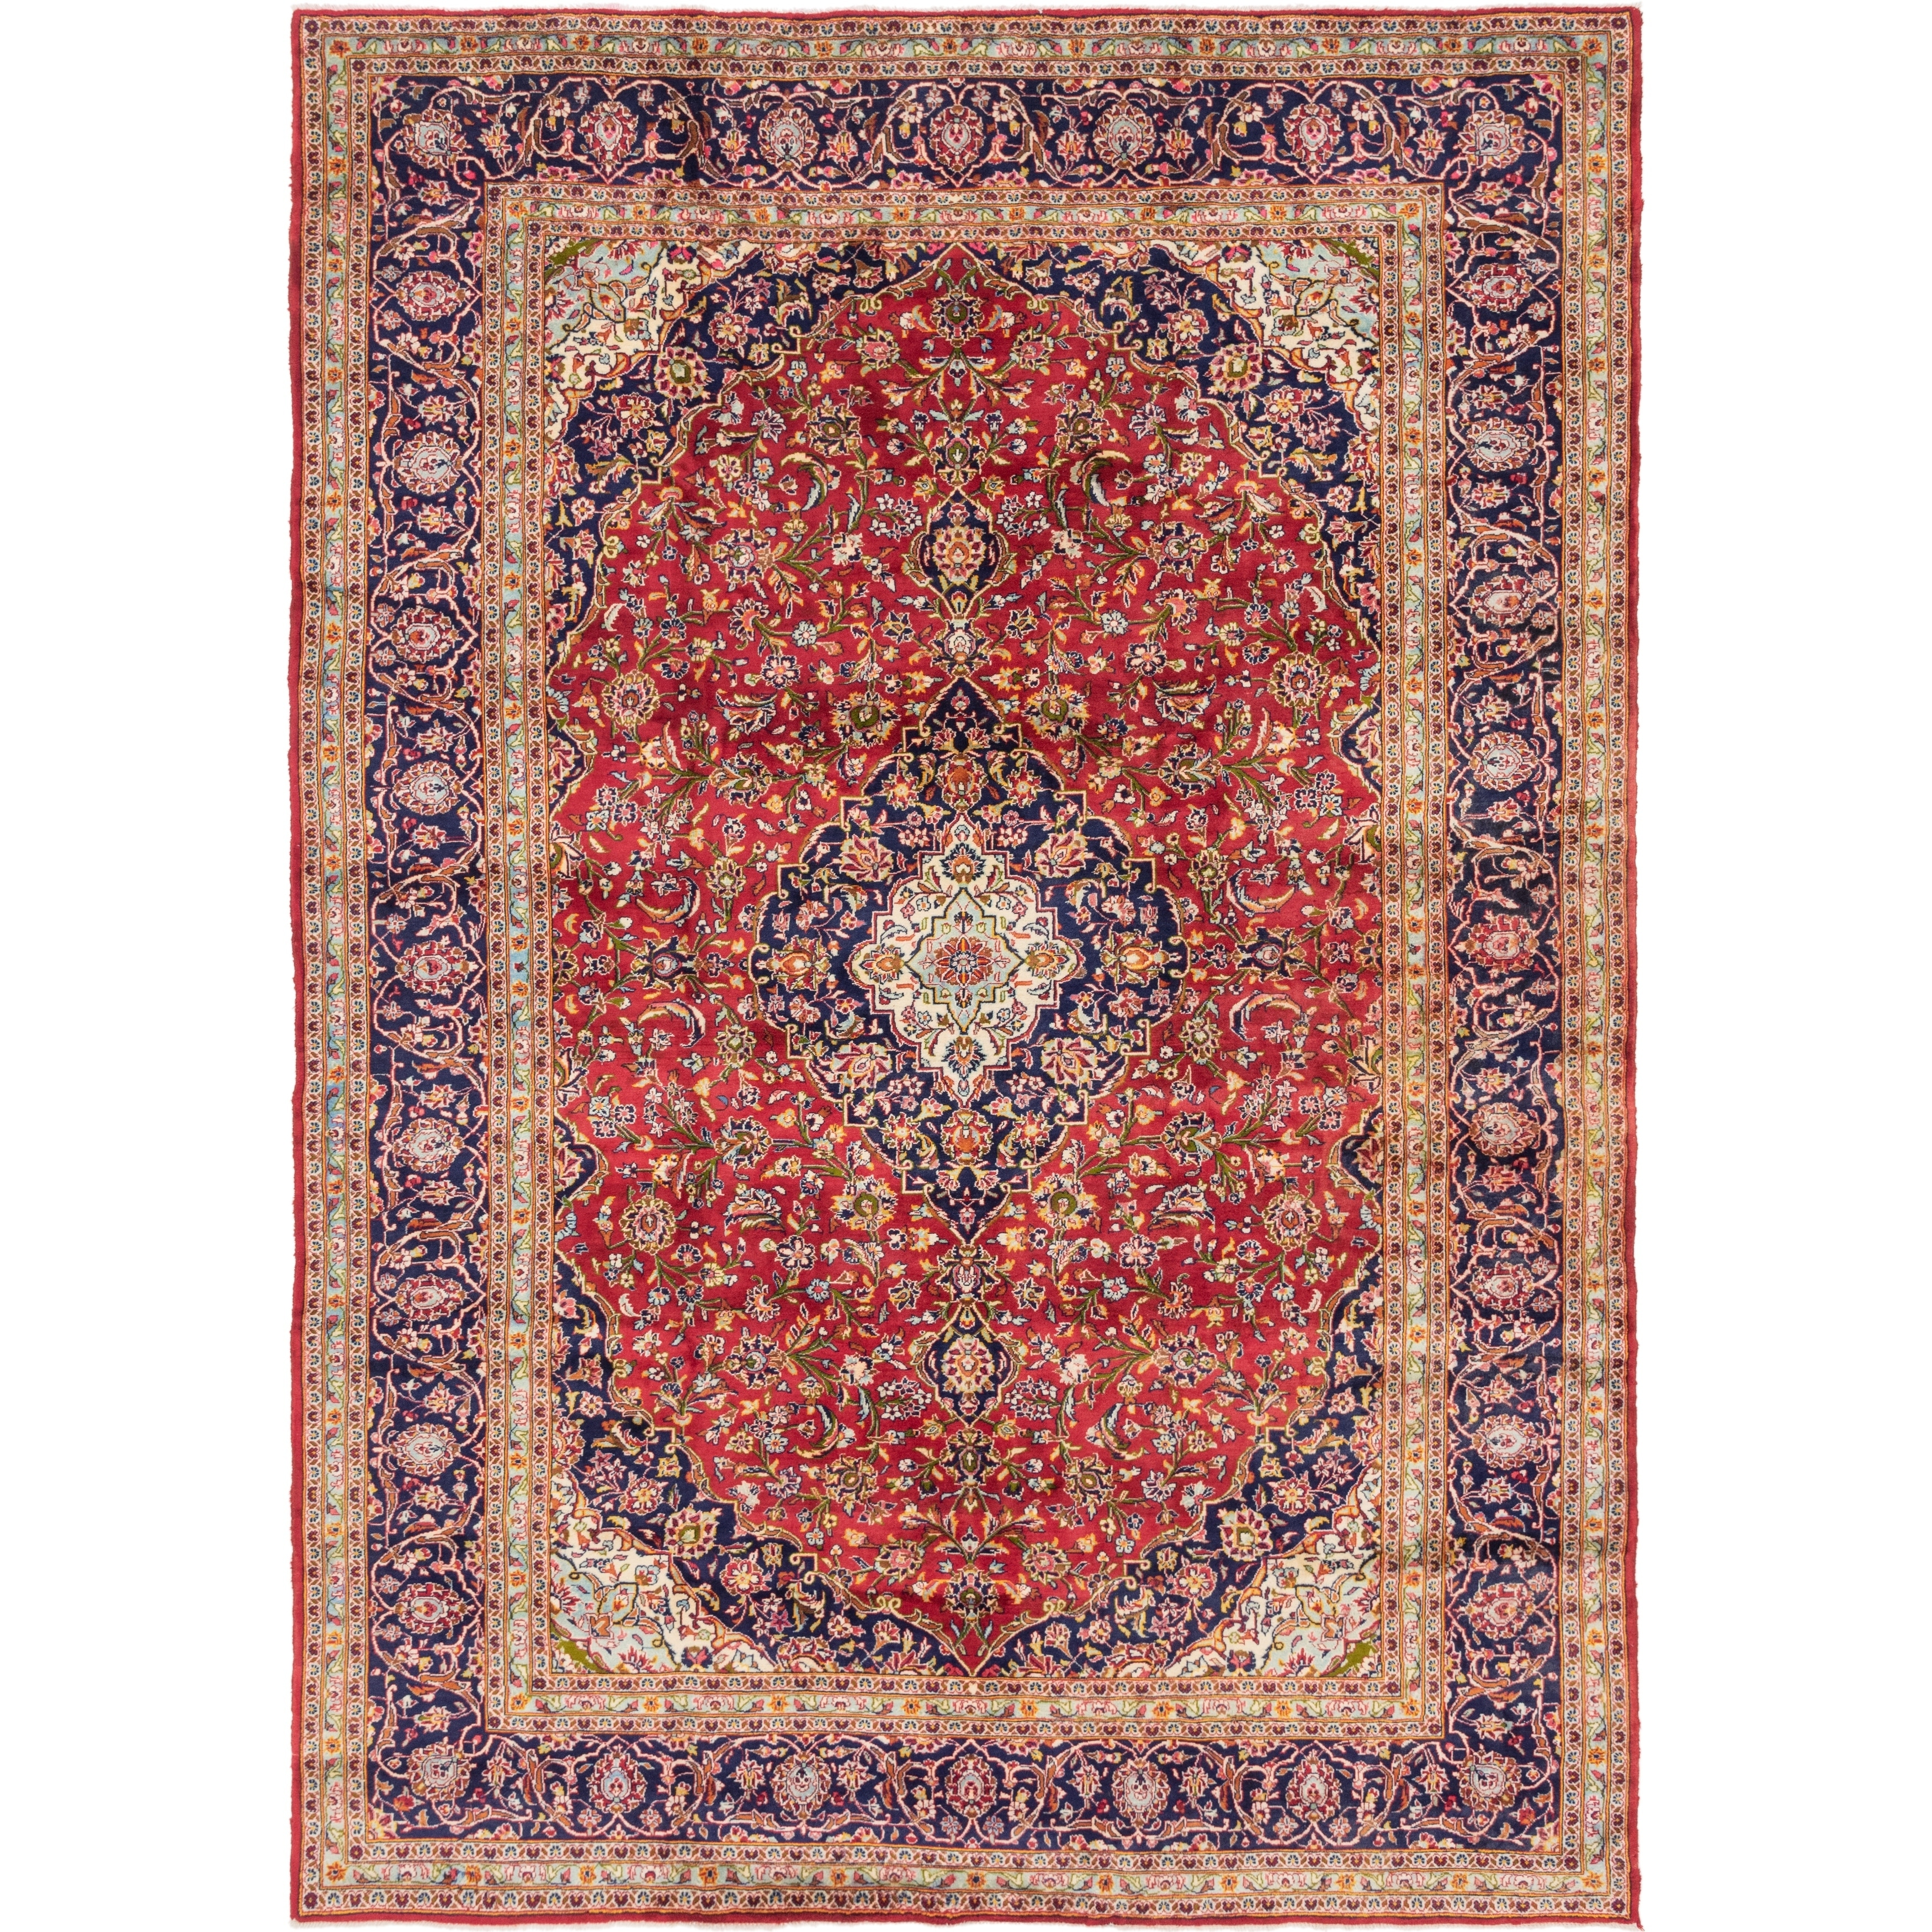 Hand Knotted Kashan Semi Antique Wool Area Rug - 9 9 x 13 9 (Red - 9 9 x 13 9)